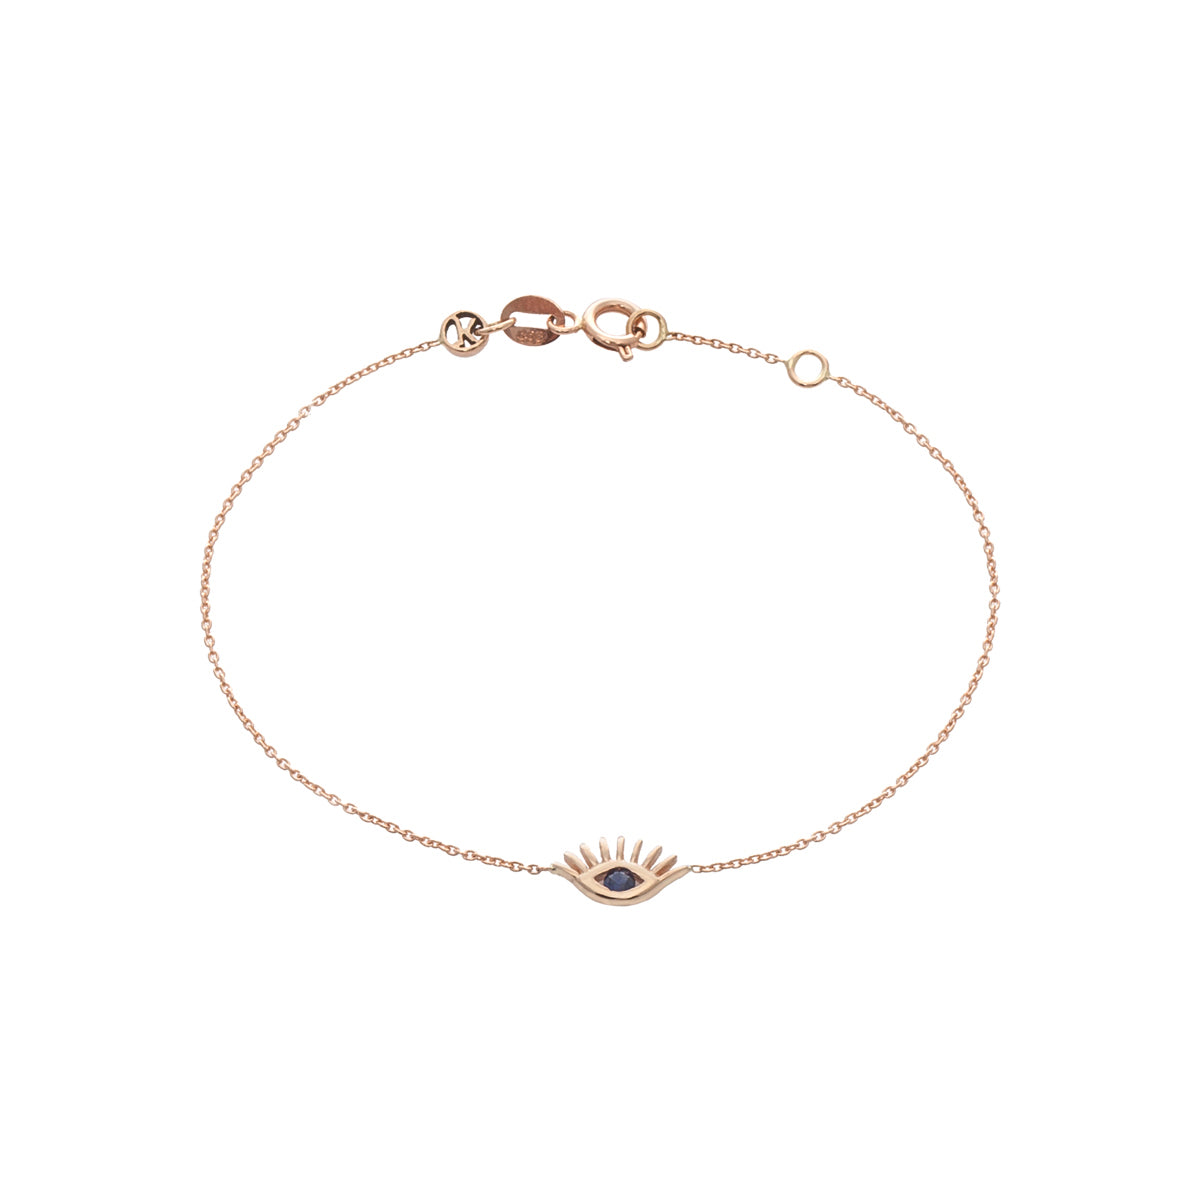 Evil Eye Bracelet by Kismet for Broken English Jewelry